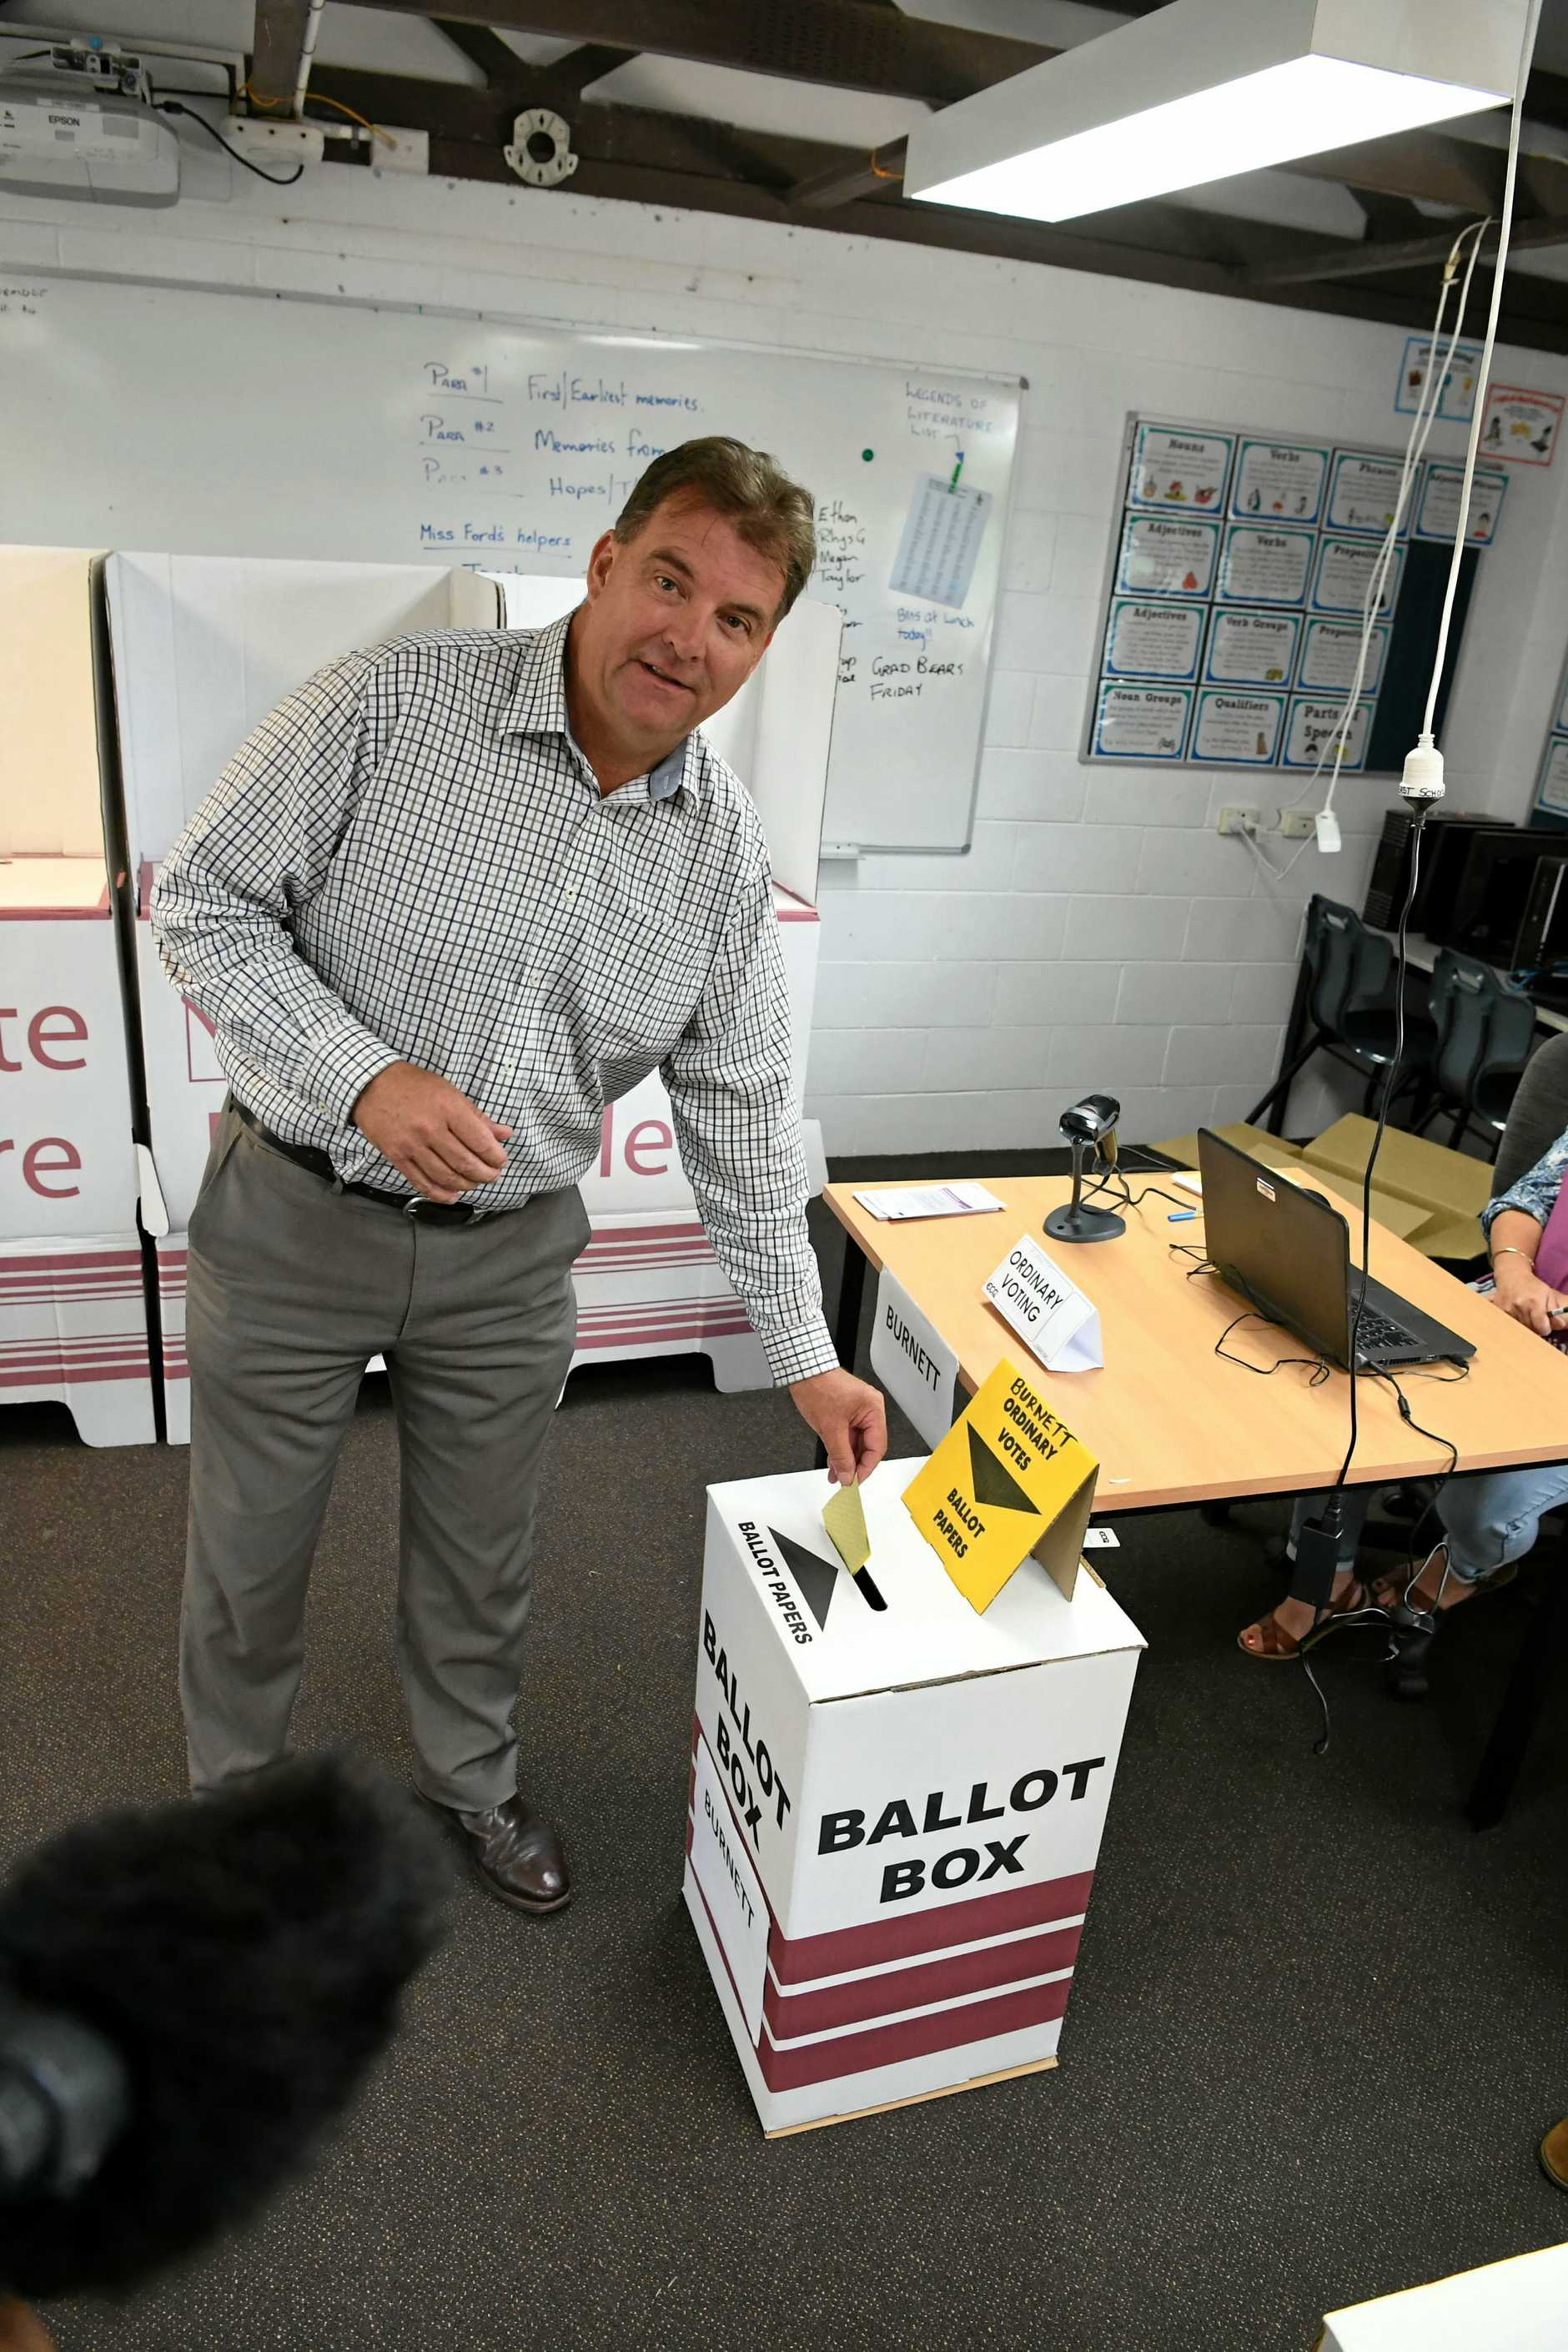 Stephen Bennett at East State School polling booth.